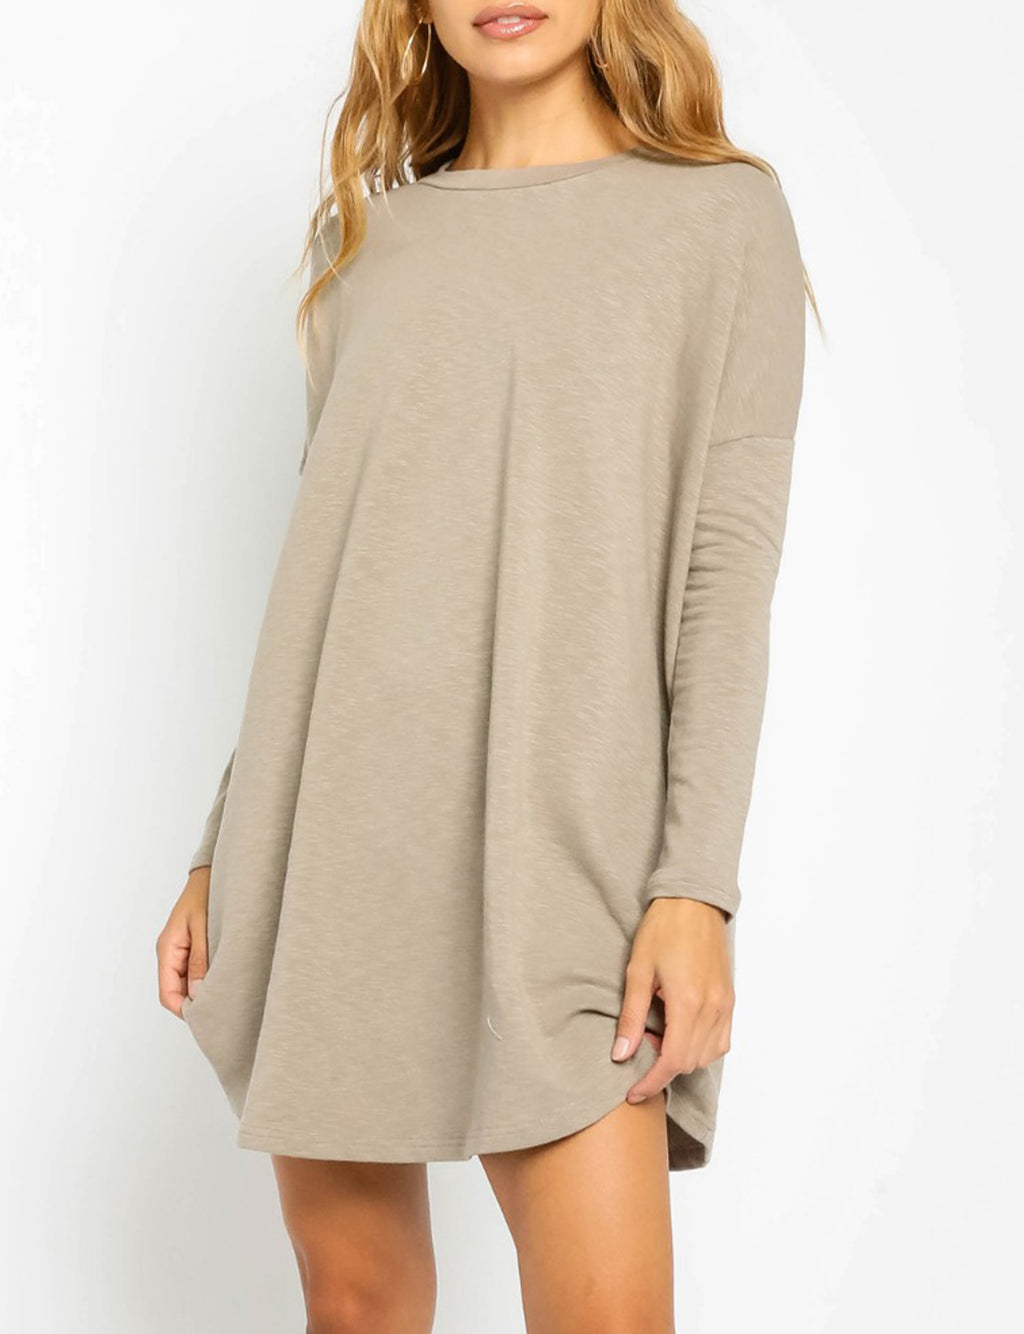 Long Sleeve Tee Shirt Dress in Oyster